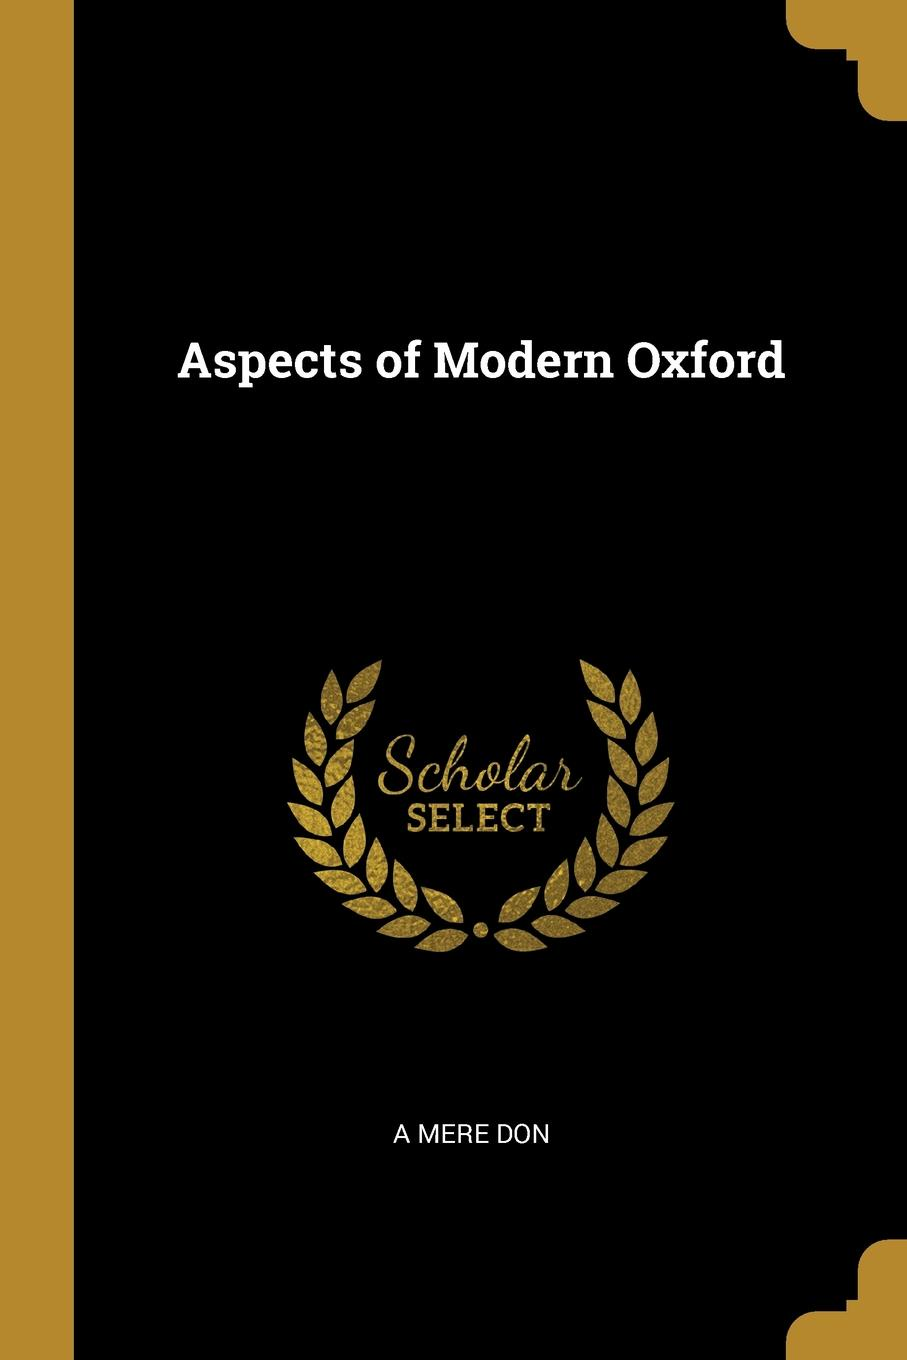 A Mere Don Aspects of Modern Oxford godley alfred denis aspects of modern oxford by a mere don